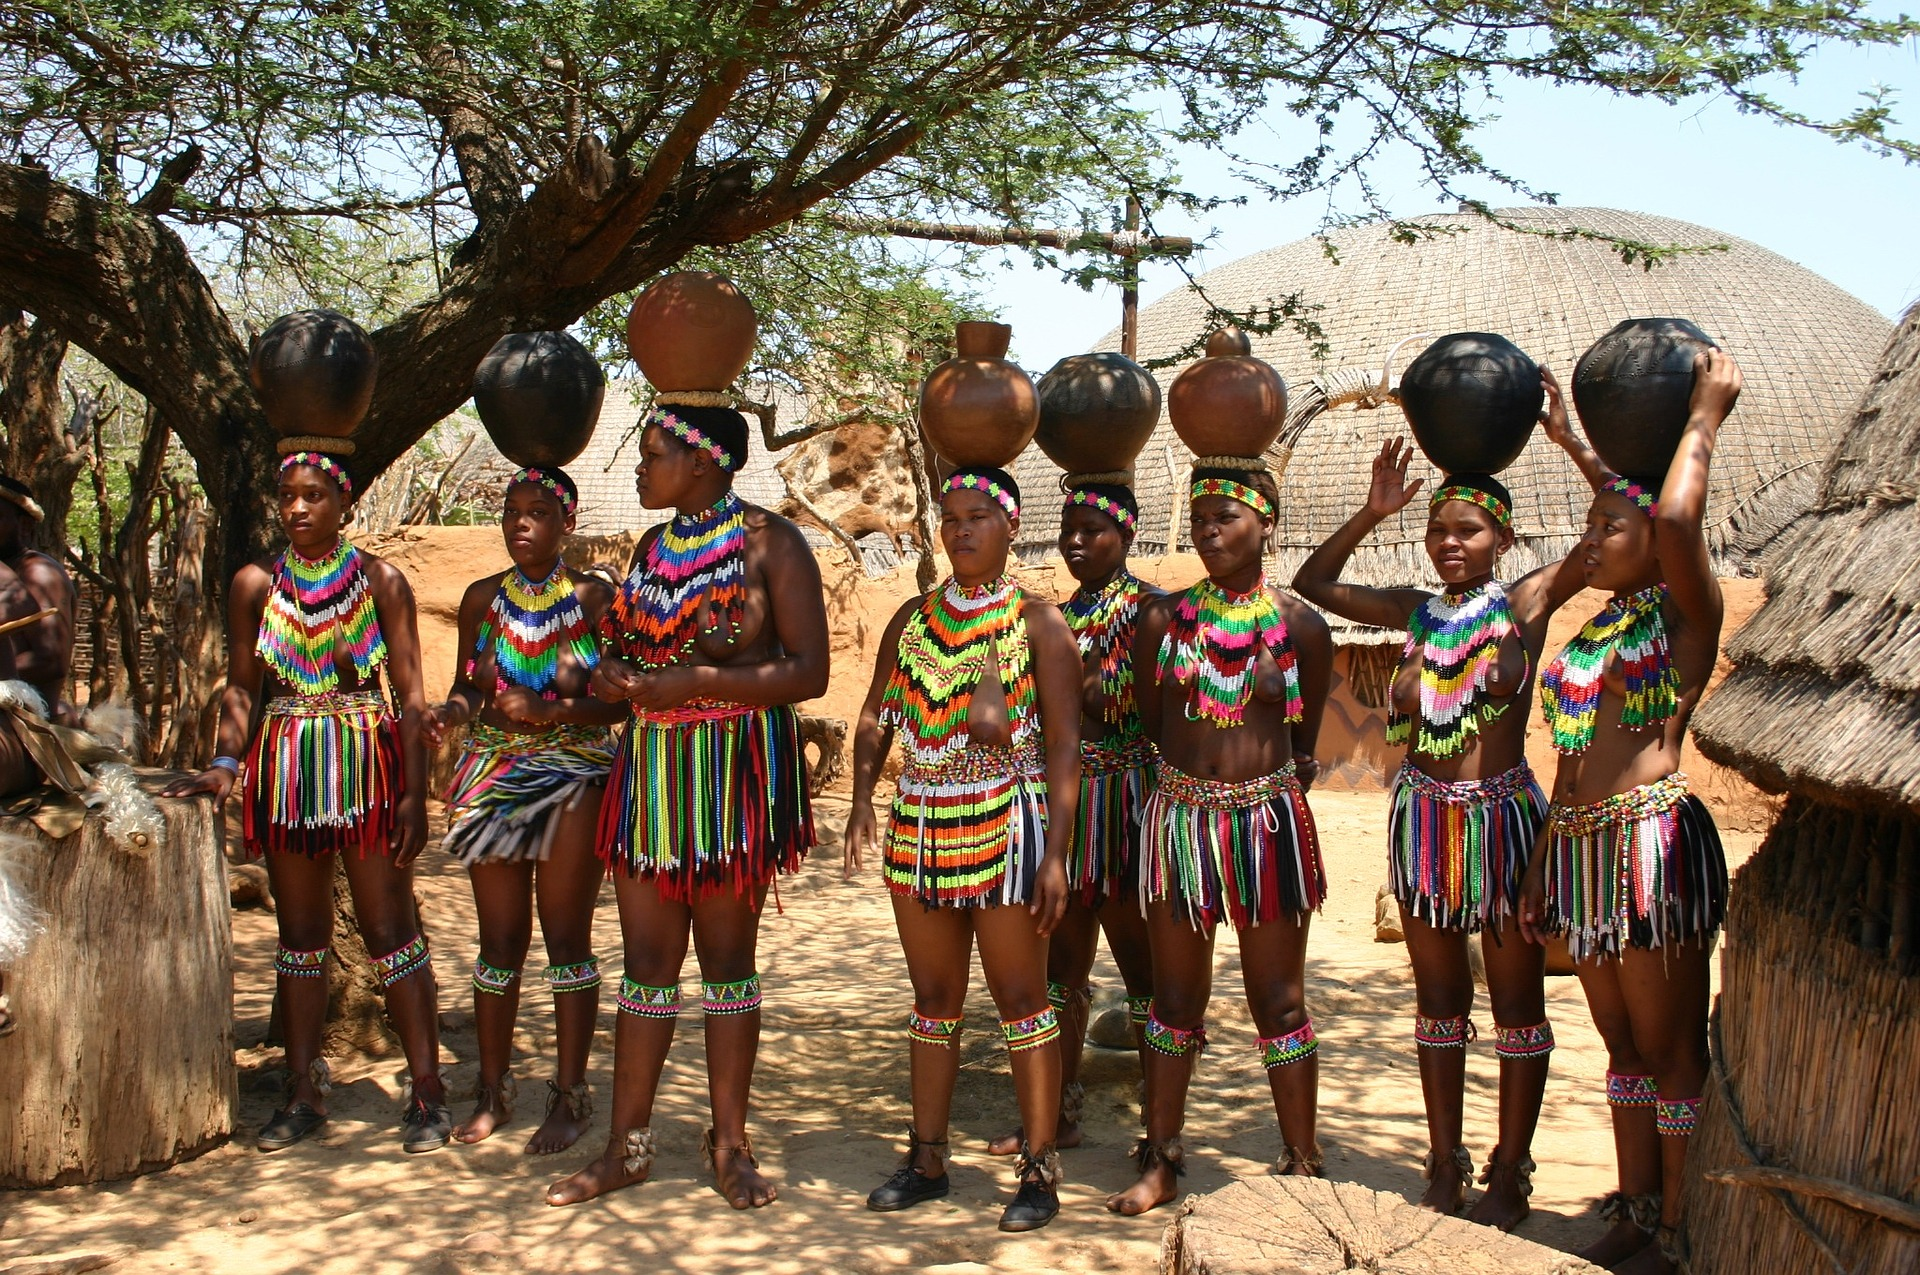 What to Do In Swaziland - RachelTravels.com